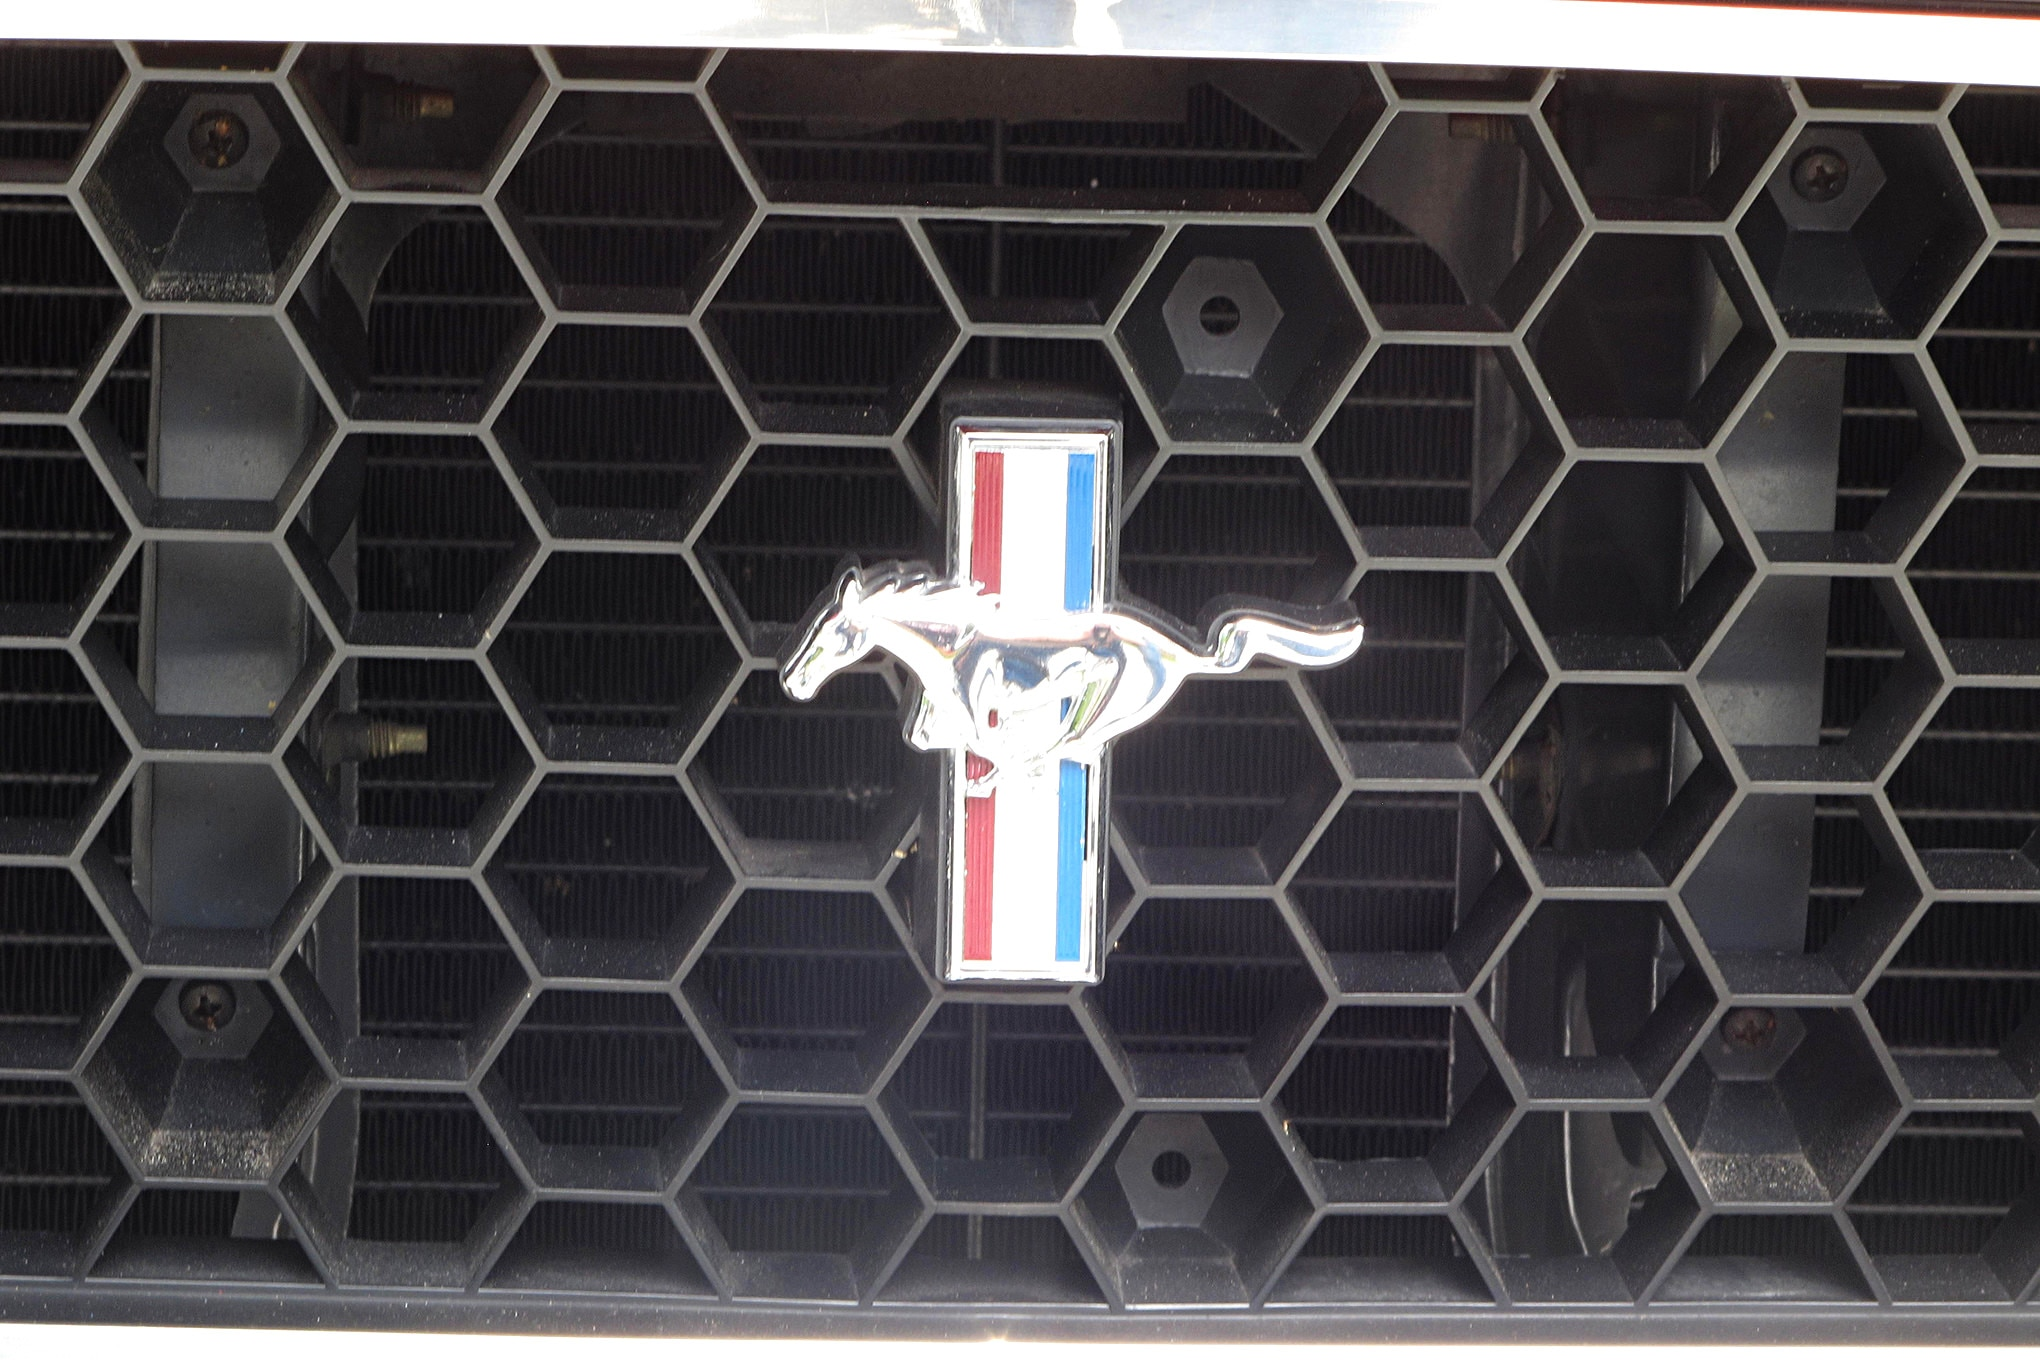 51 1971 Ford Mustang Boss 351 Grille